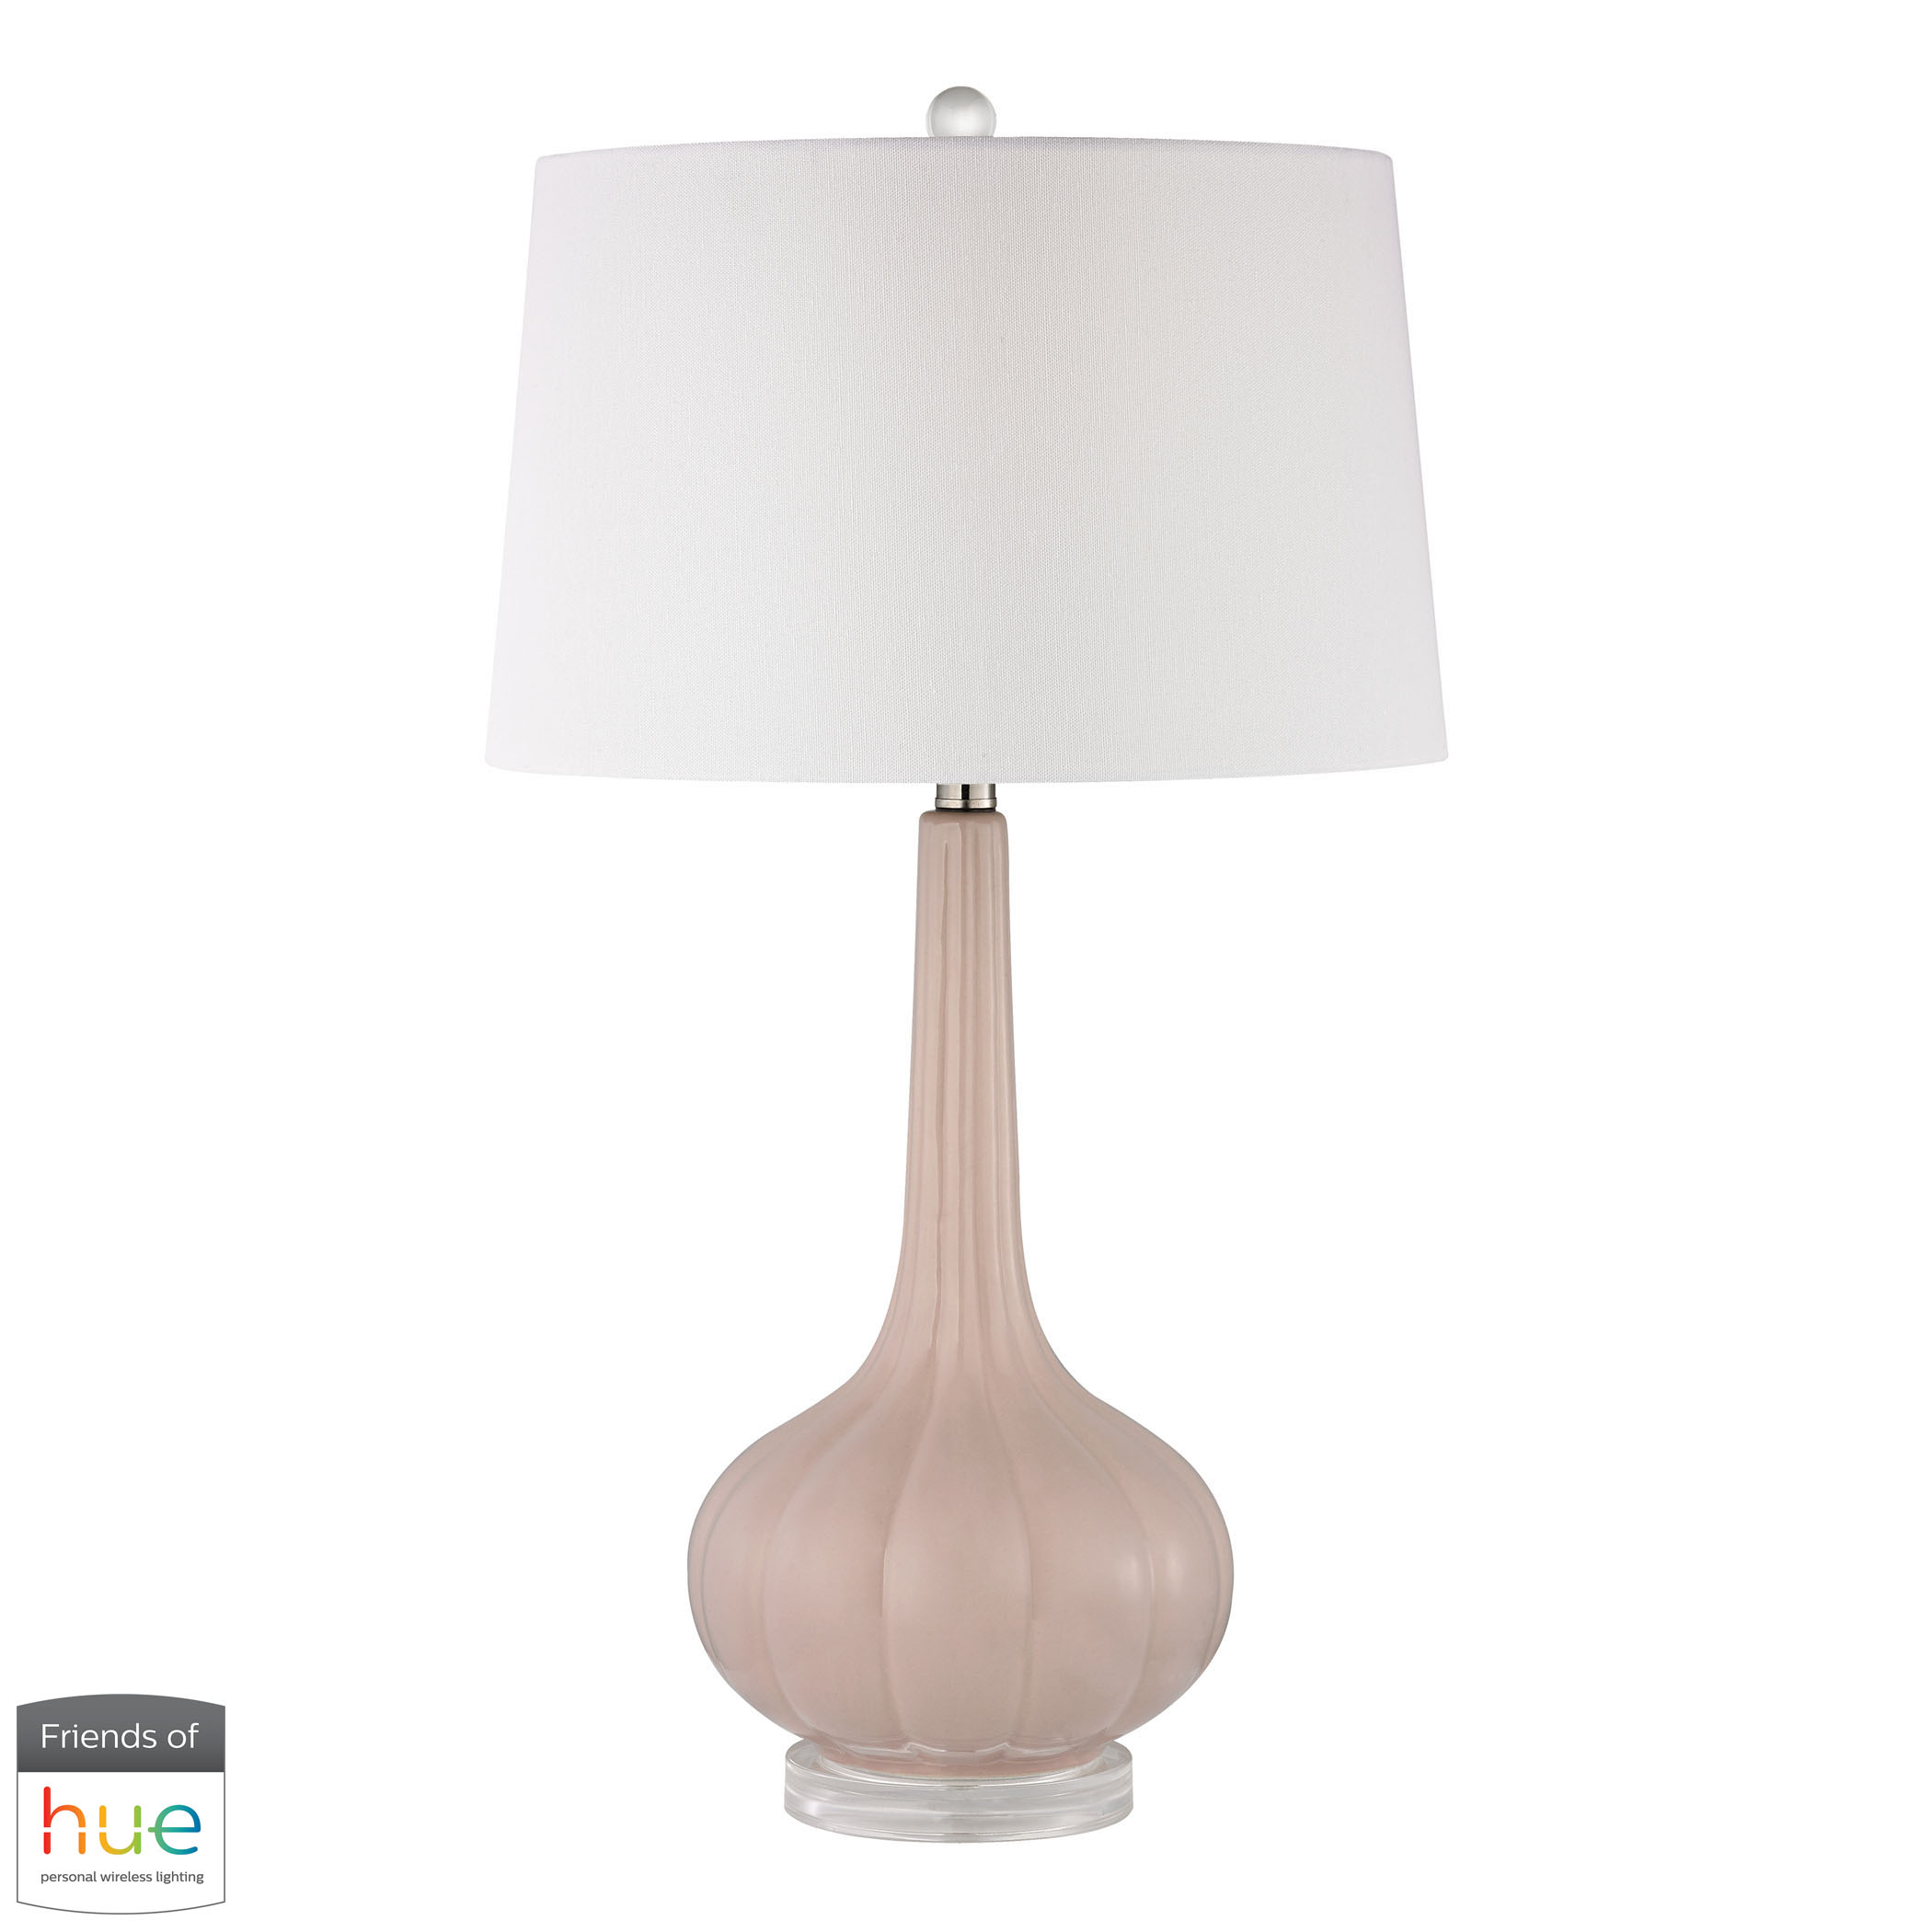 Abbey Lane Ceramic Table Lamp in Pastel Pink with Philips Hue LED | Elk Home